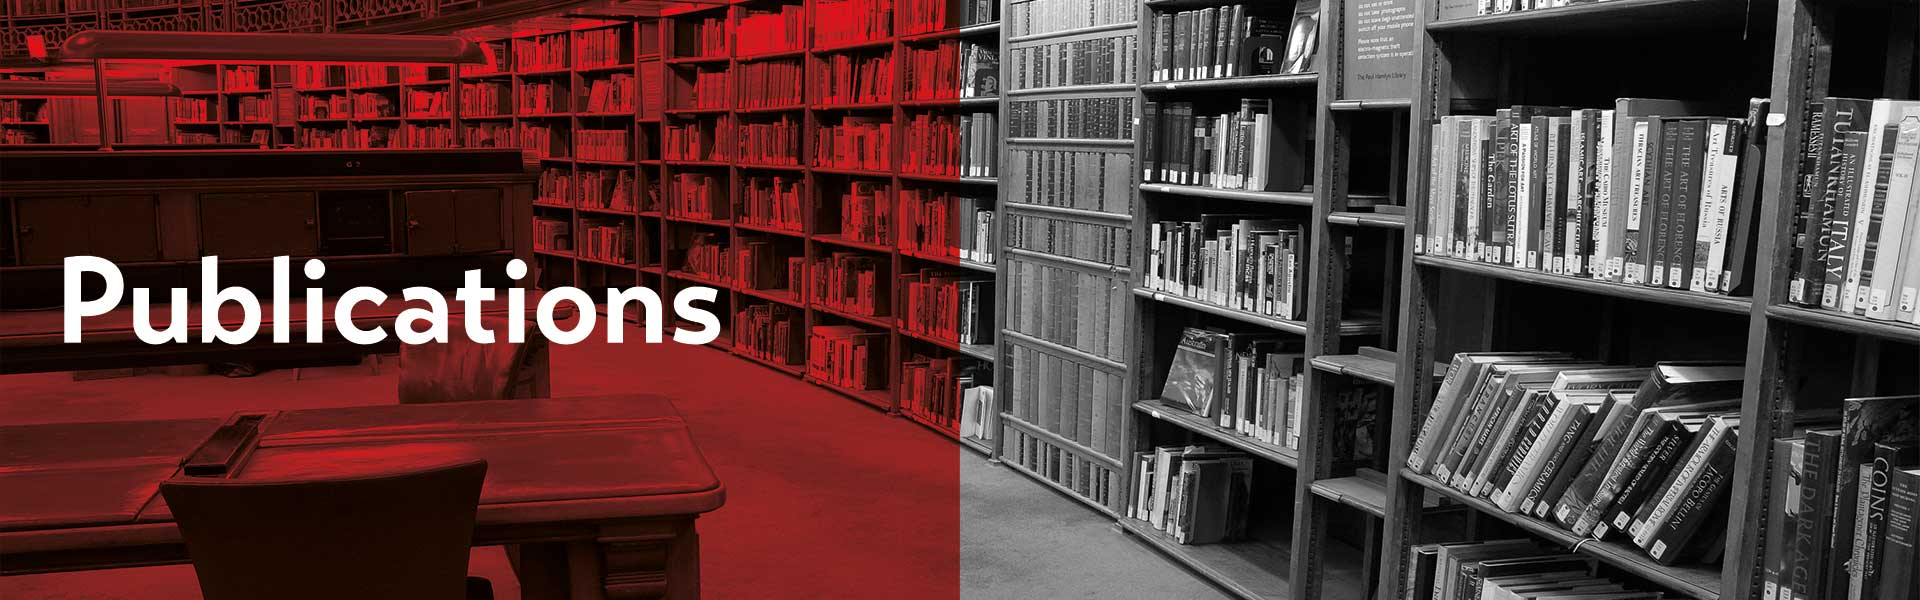 "The left side of the image is colored red with the title ""Publication"". In the background you can see an old library with two reading chairs in the front and a spacious wall of books."